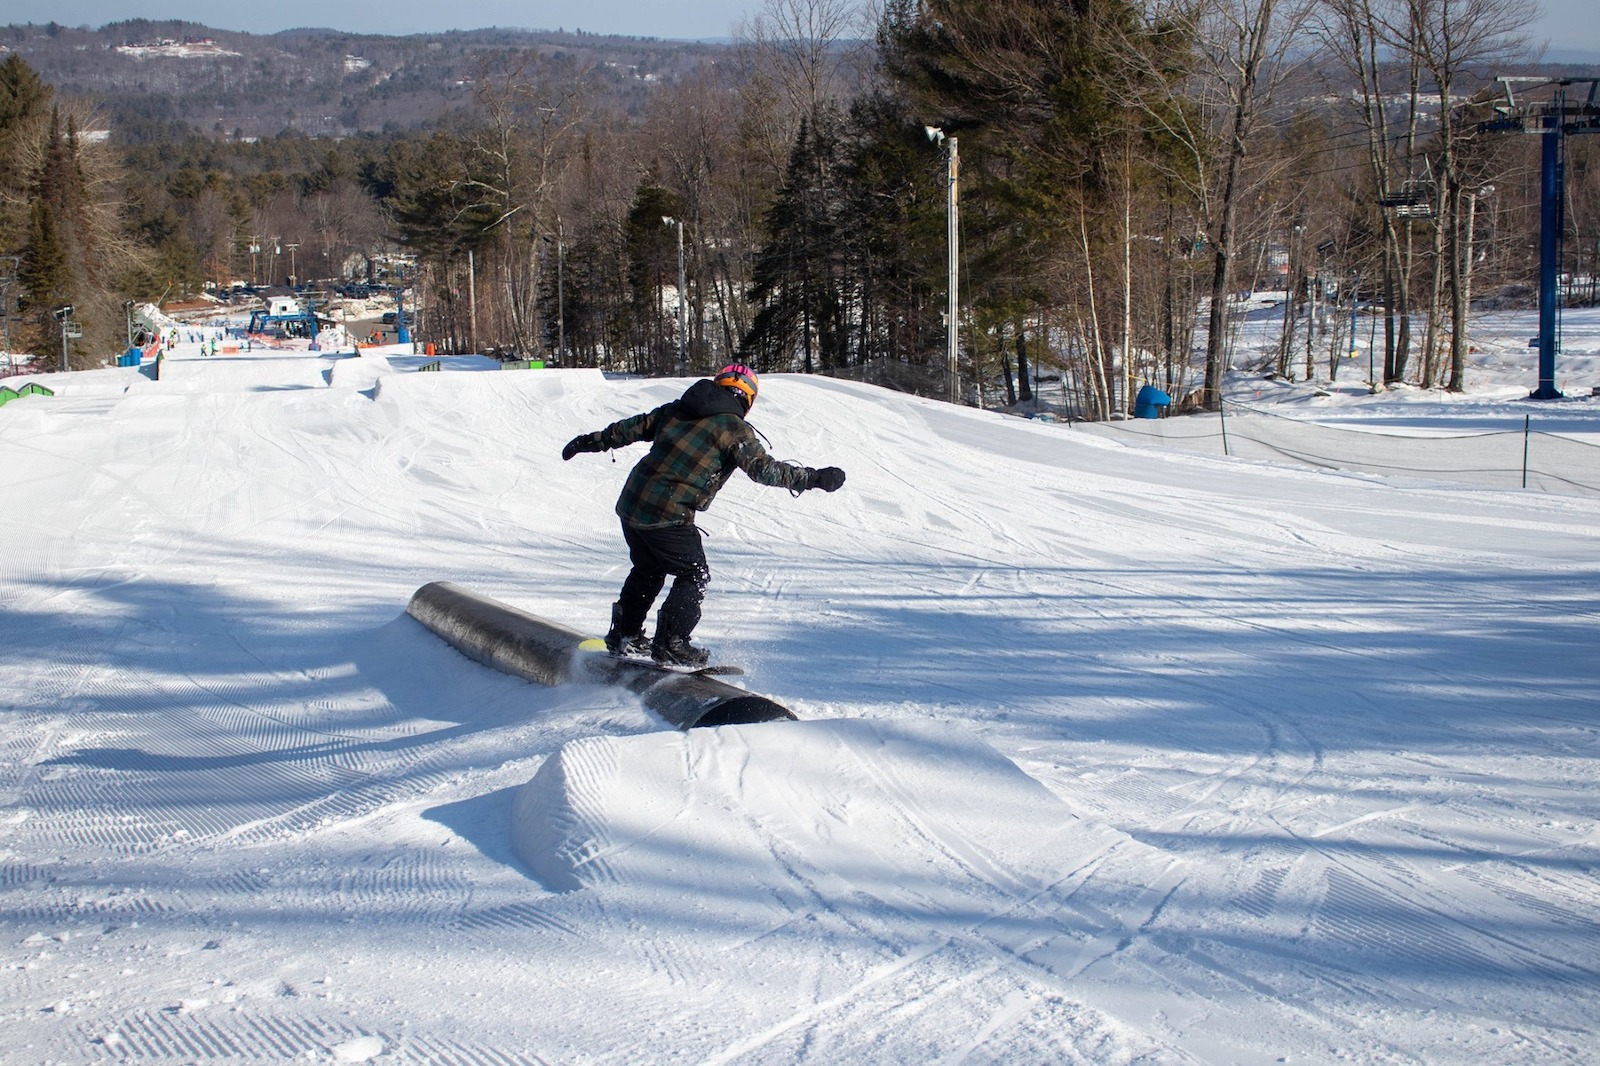 Image of as snowboarder grinding a rail at Pats Peak Ski Area in New Hampshire